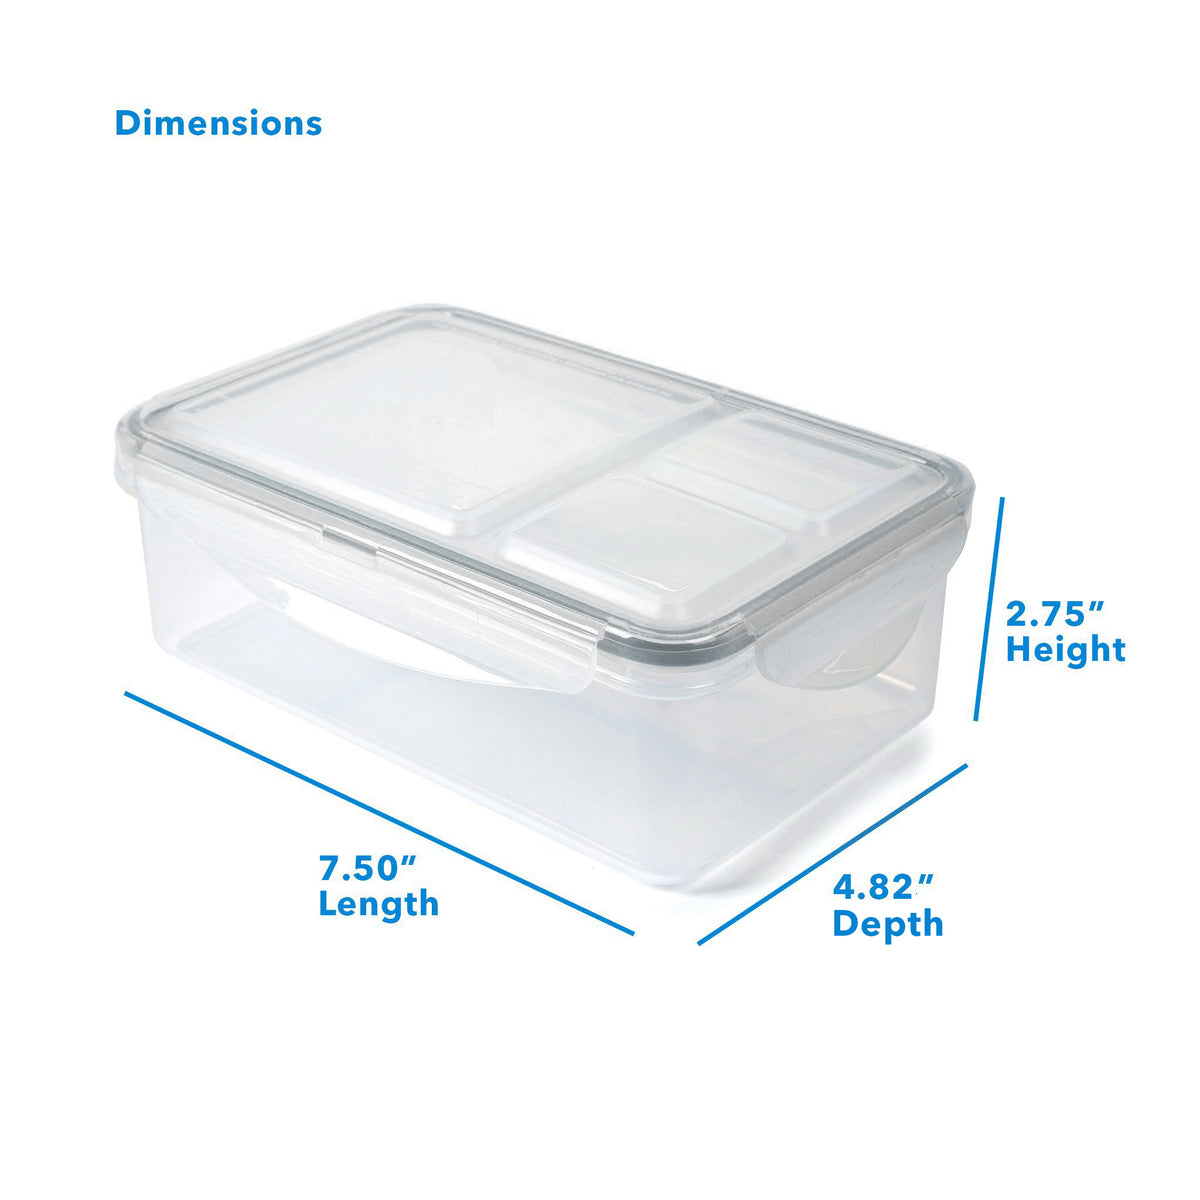 "Arctic Zone® High Performance Ultimate Secret Lunch Bucket - Black - Container Dimensions: (L x D x H) 7.50"" x 4.82"" x 2.75"""